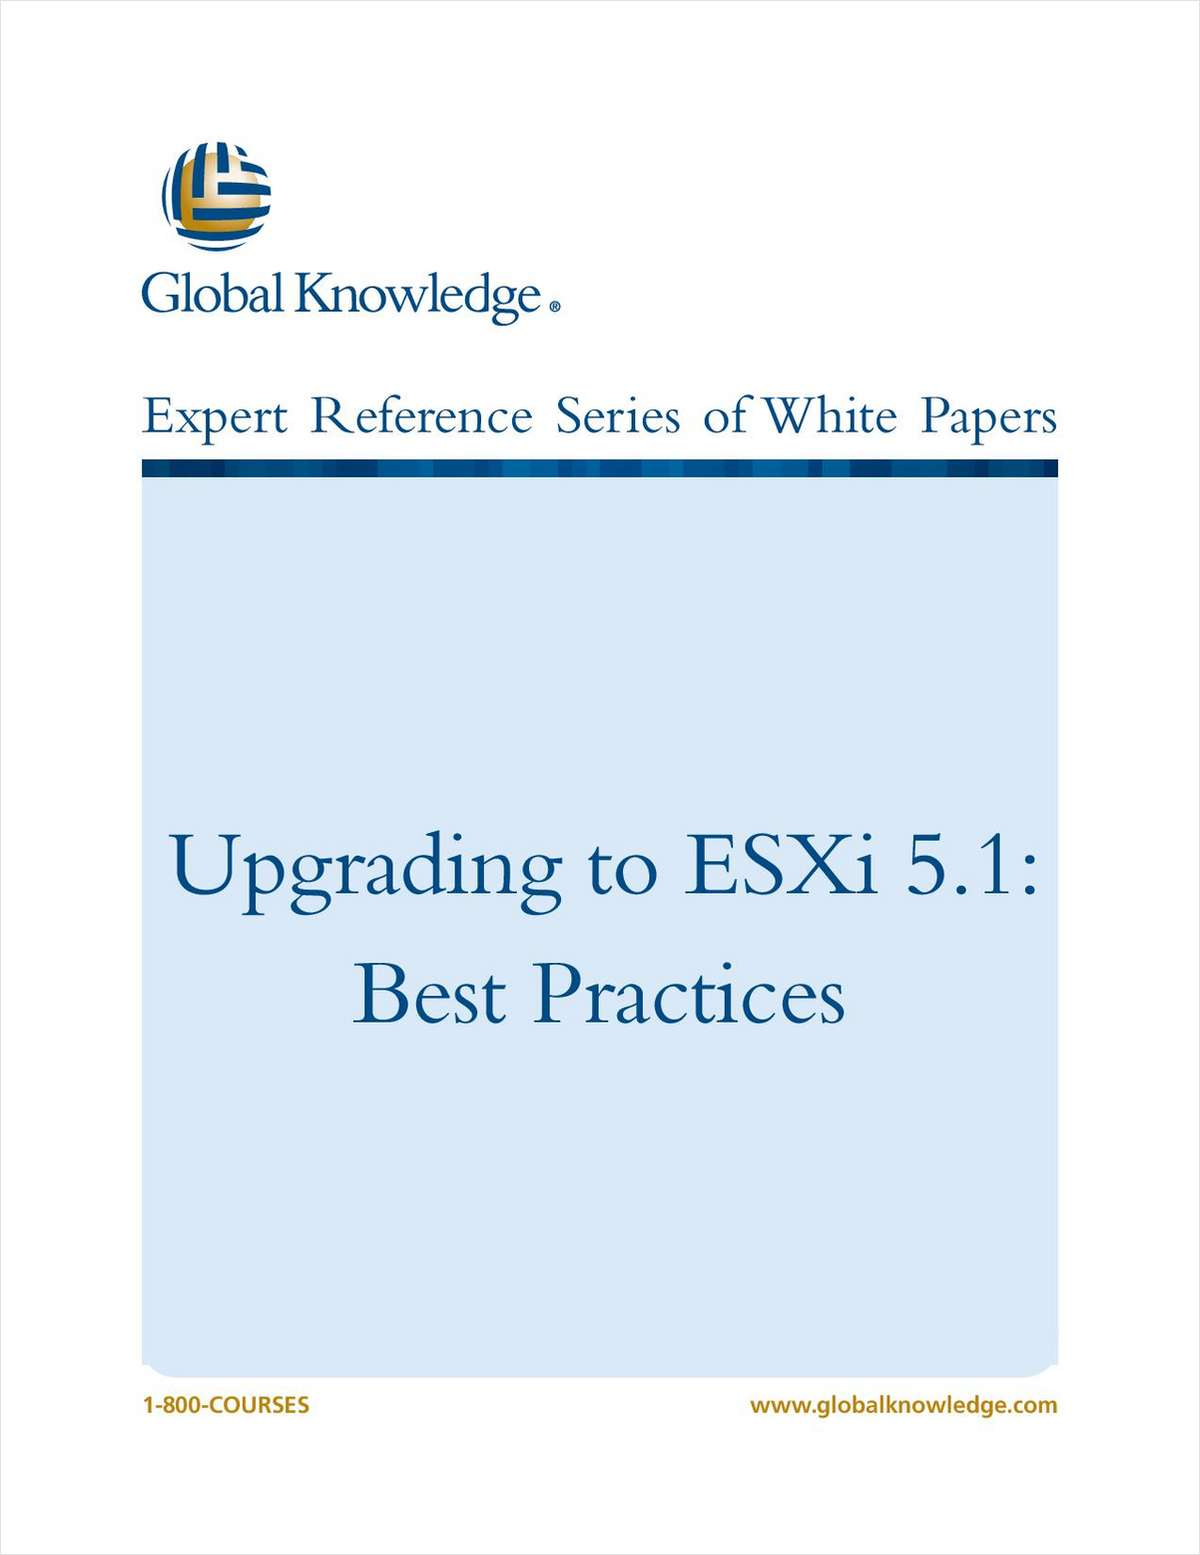 Upgrading to ESXi 5.1 - Best Practices